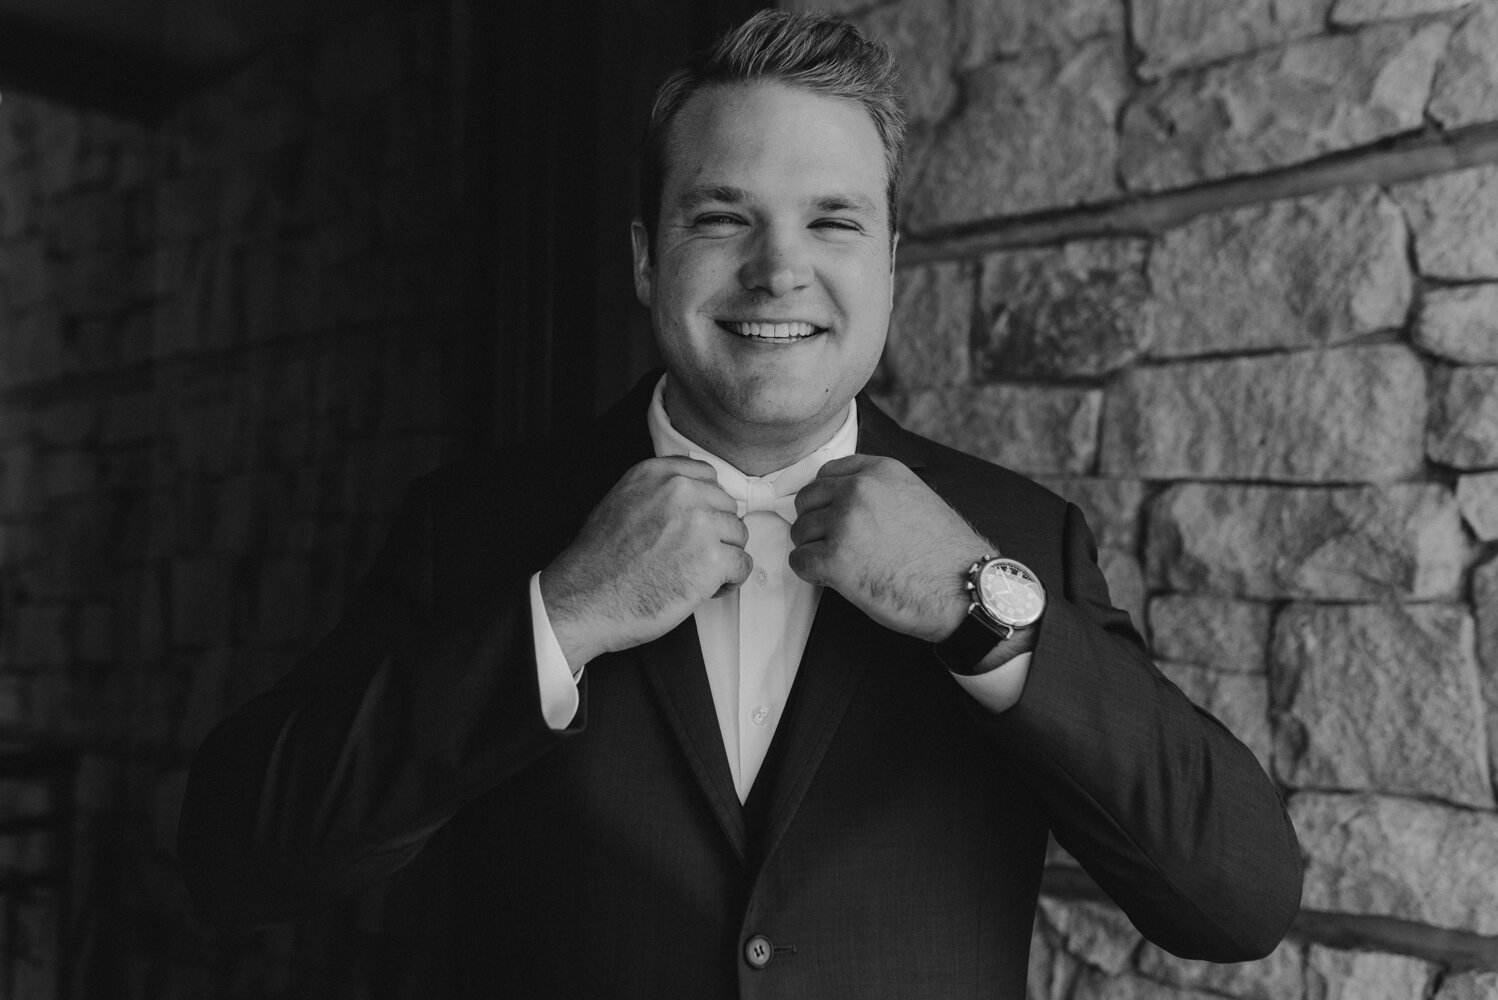 Edgewood Tahoe Wedding, photo of groom getting ready